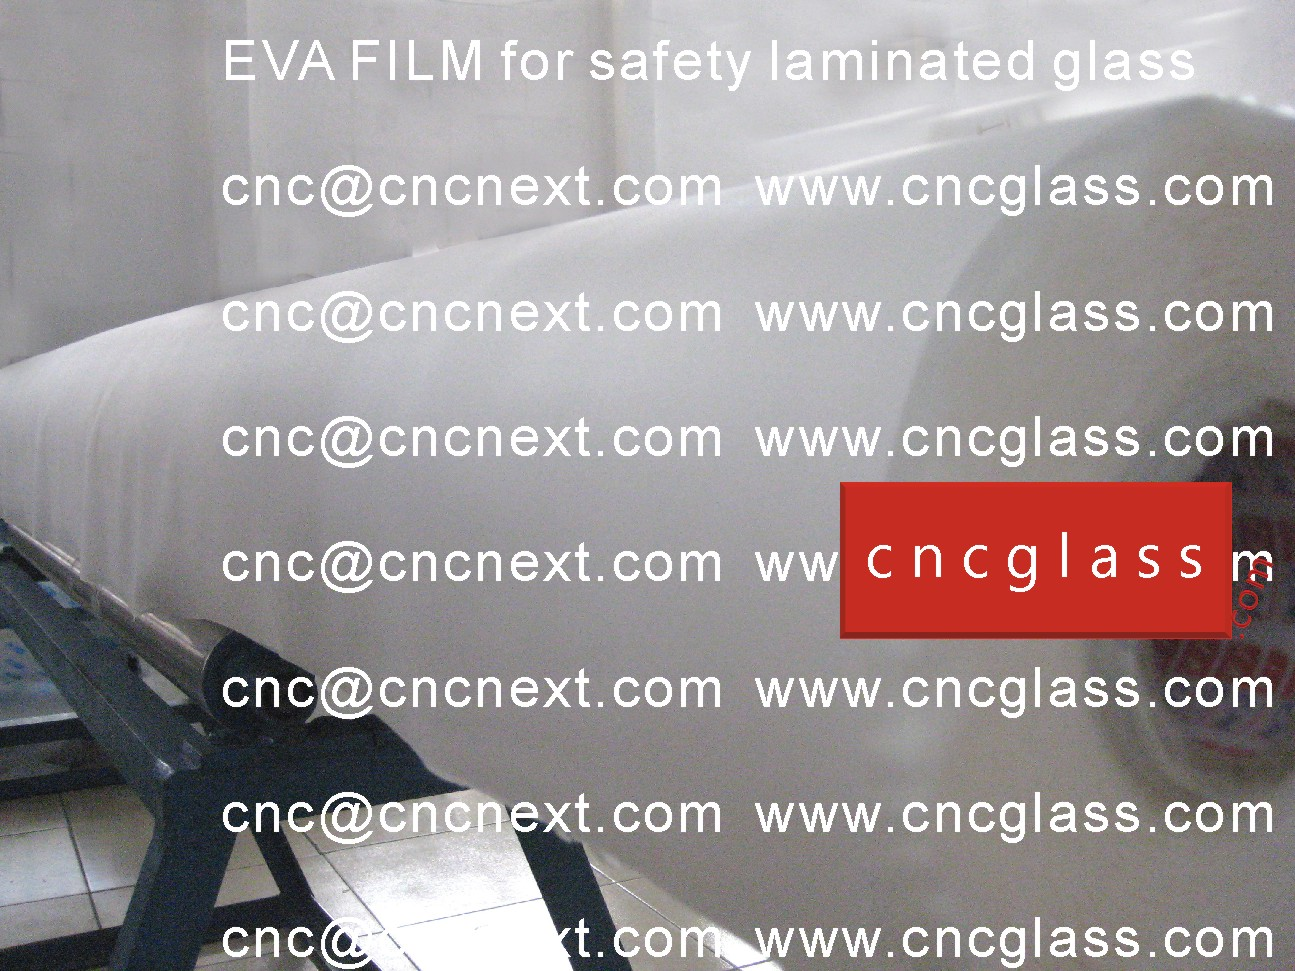 008 EVAFORCE EVA FILM FOR SAFETY LAMINATED GLASS